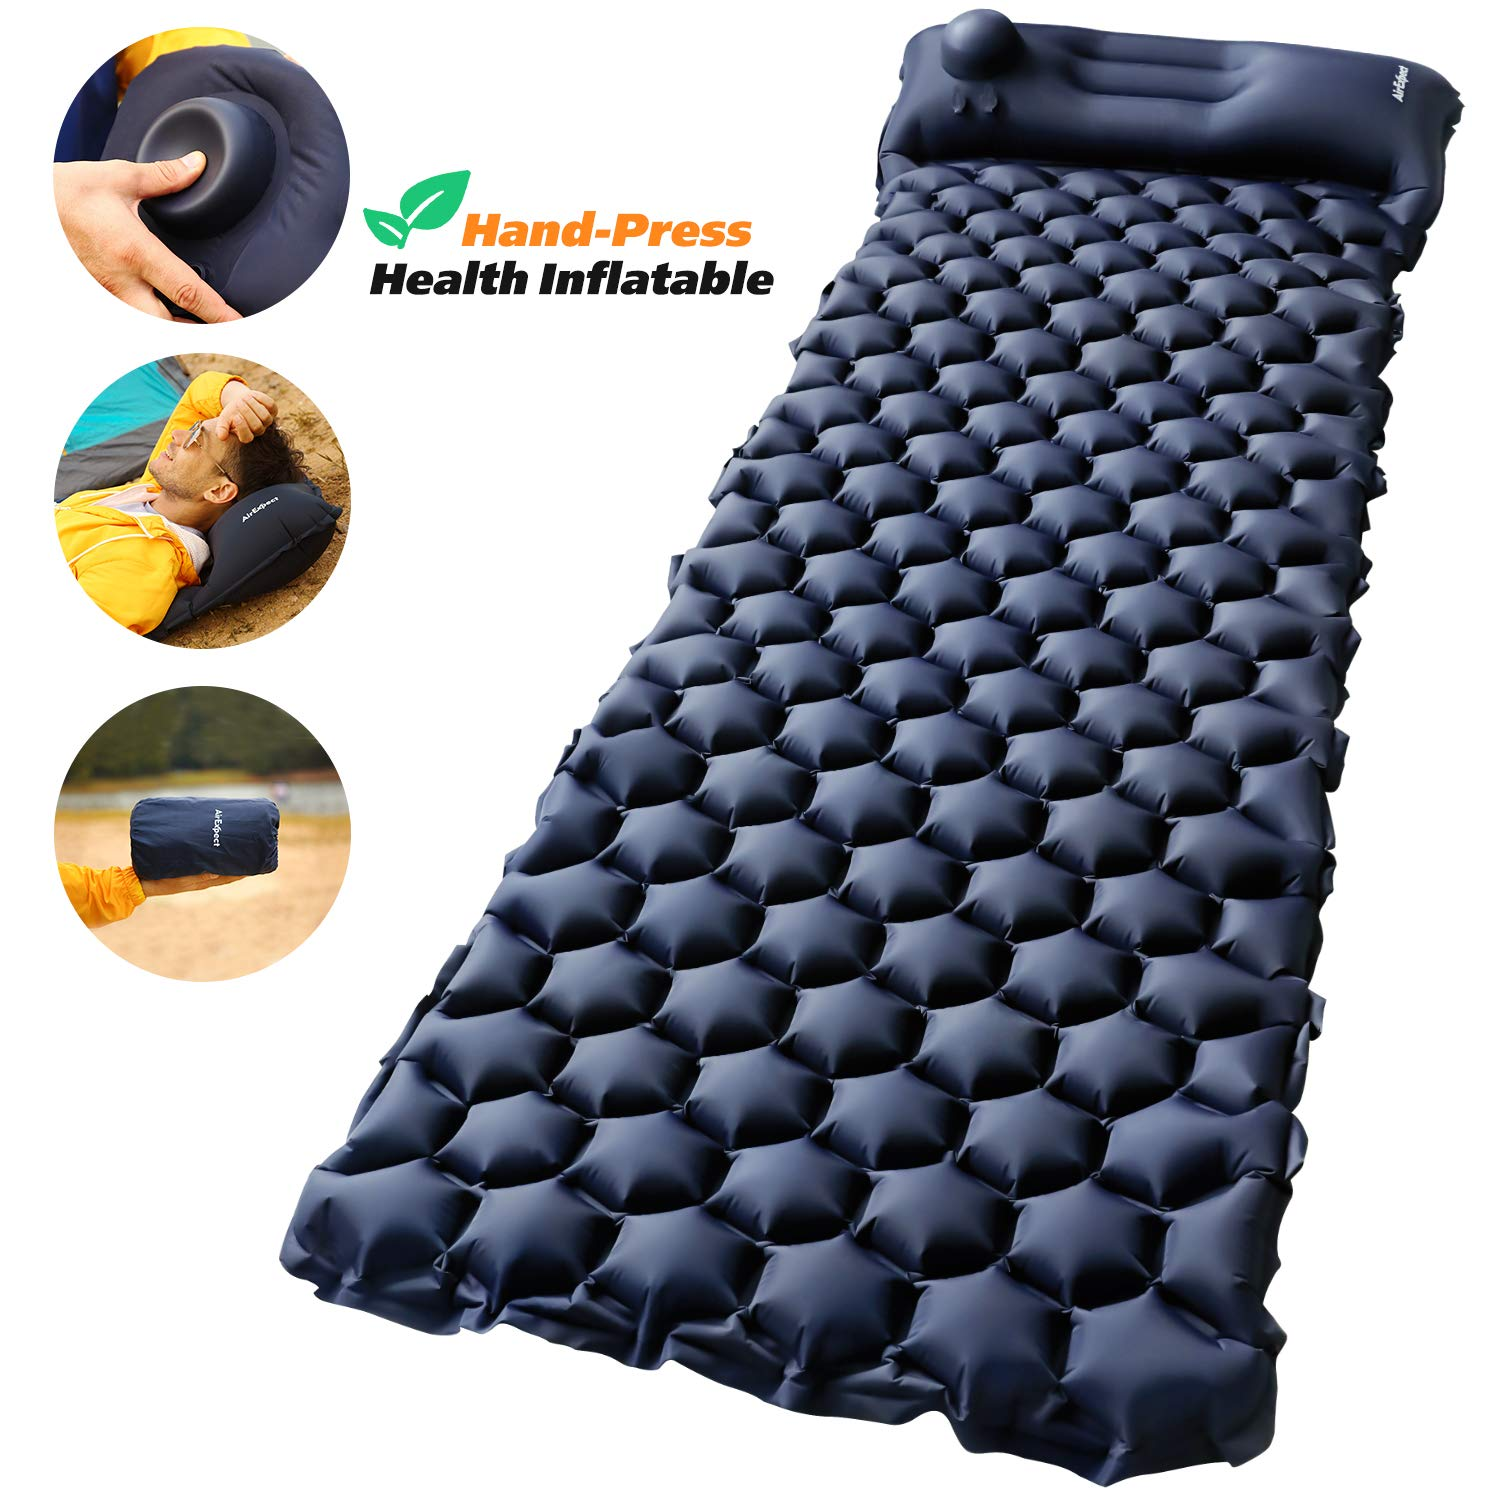 Camping Sleeping Pad with Built-in Pump - AirExpect Upgraded Inflatable Camping Mat with Pillow for Backpacking, Traveling, Hiking, Durable Waterproof Air Mattress Compact Ultralight Hiking Pad by AirExpect